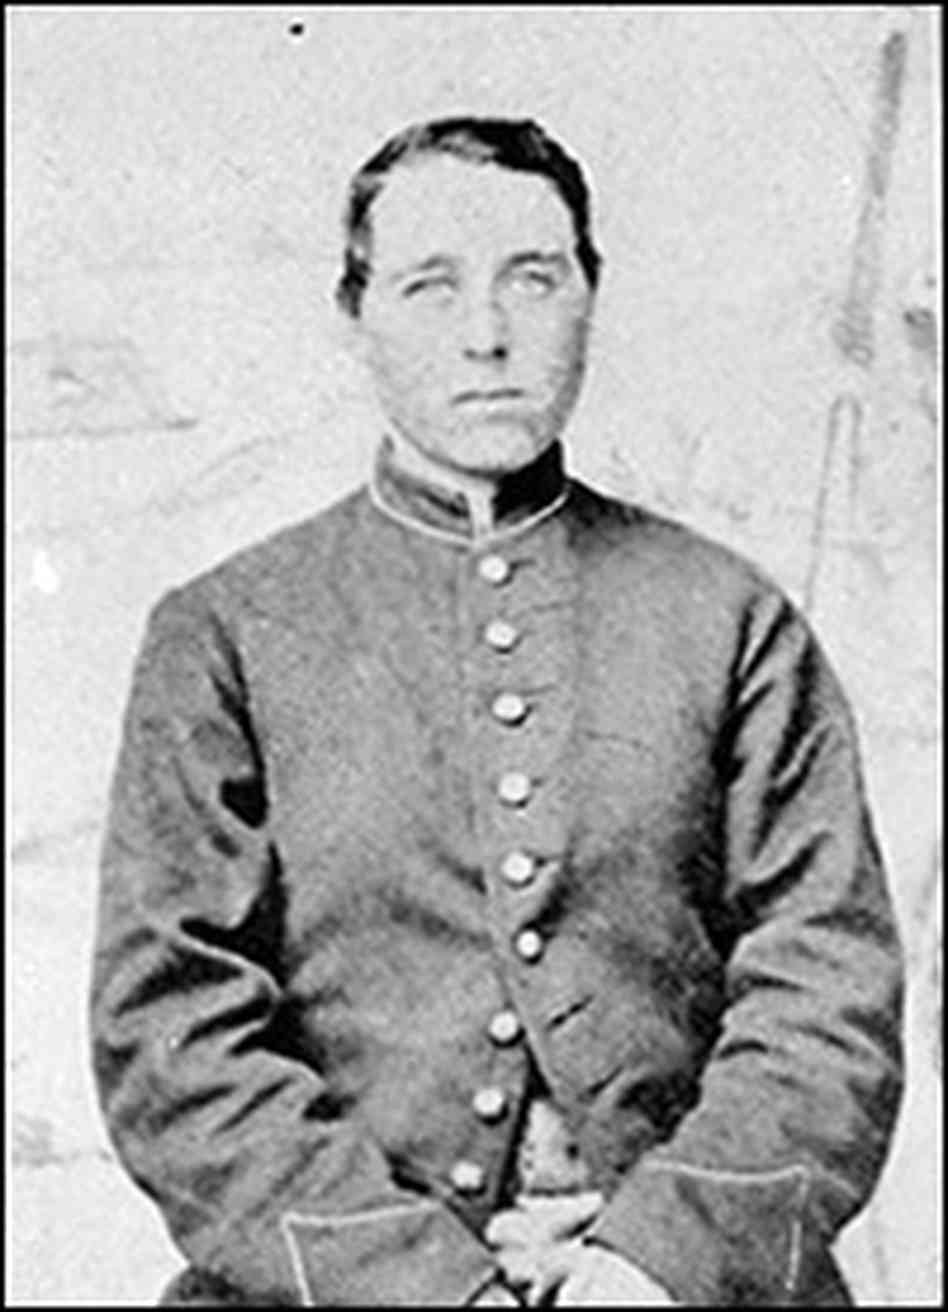 Union soldier Albert Cashier, who was really Jennie Hodgers, fought in dozens of battles during the Civil War. In 1913, she made headlines upon being discovered as a woman in an old soldiers home.